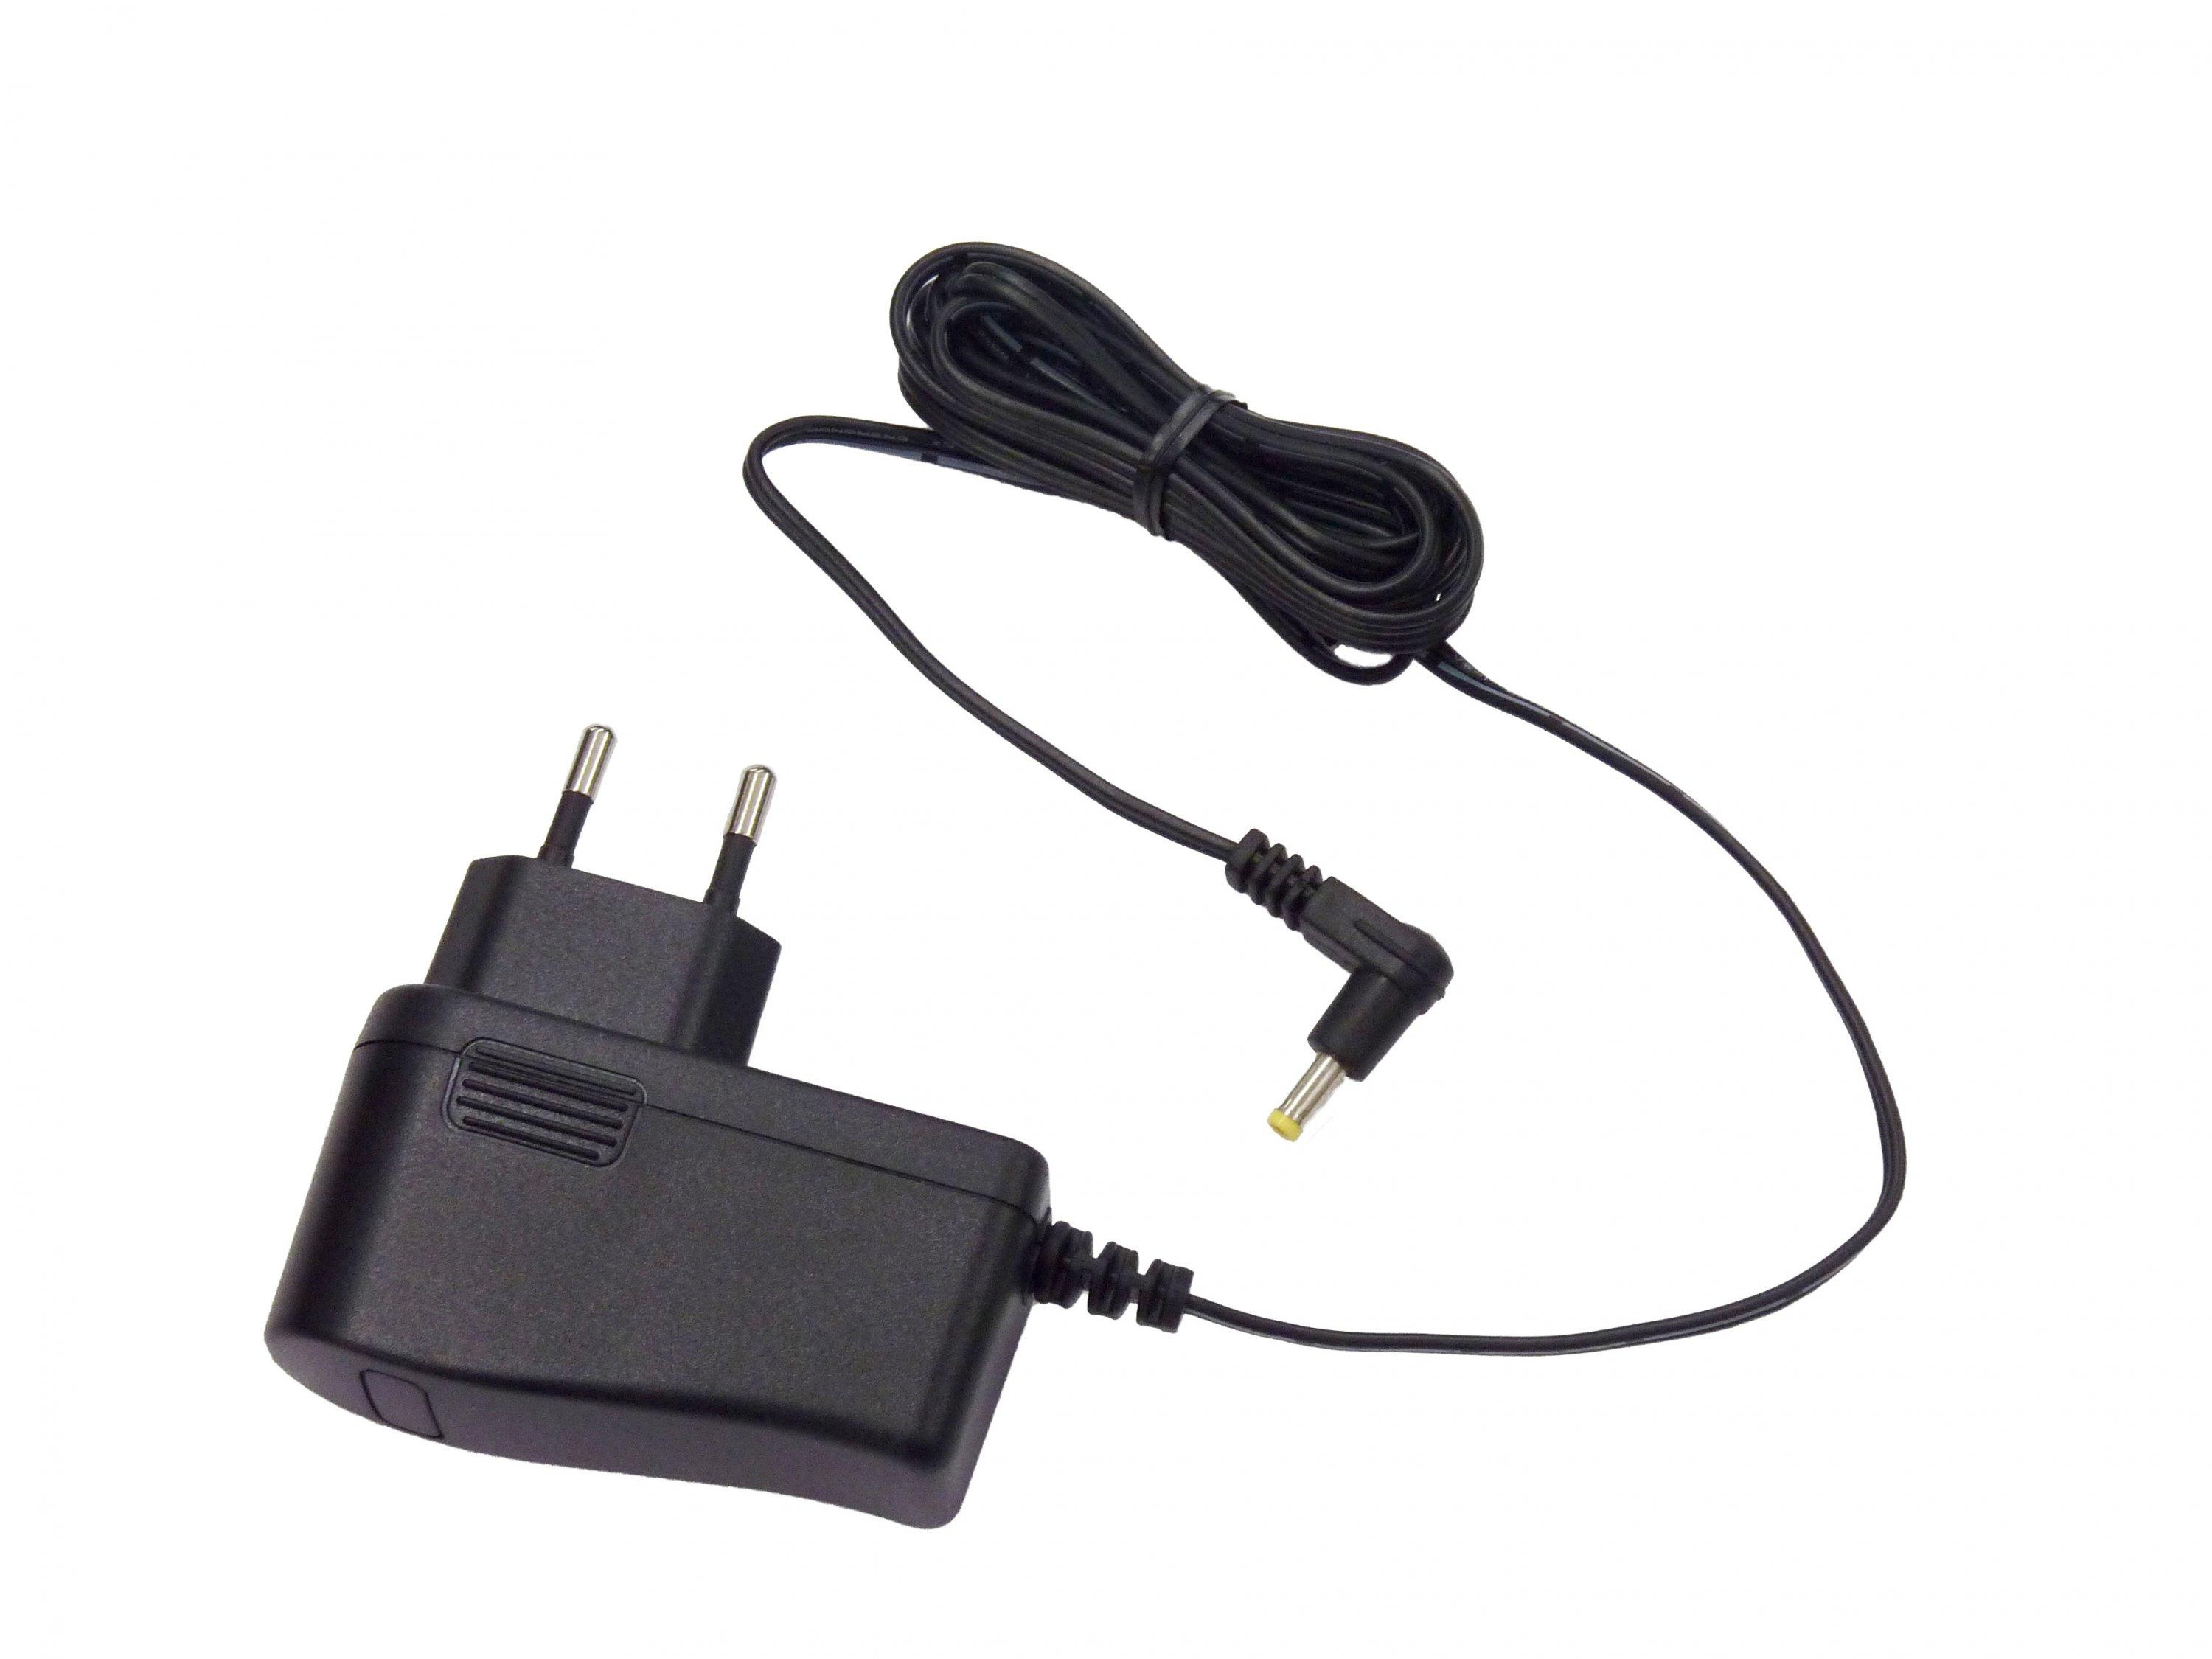 Yaesu SAD-11C 2-Pin Euro Charger  for SBH-11 Charger